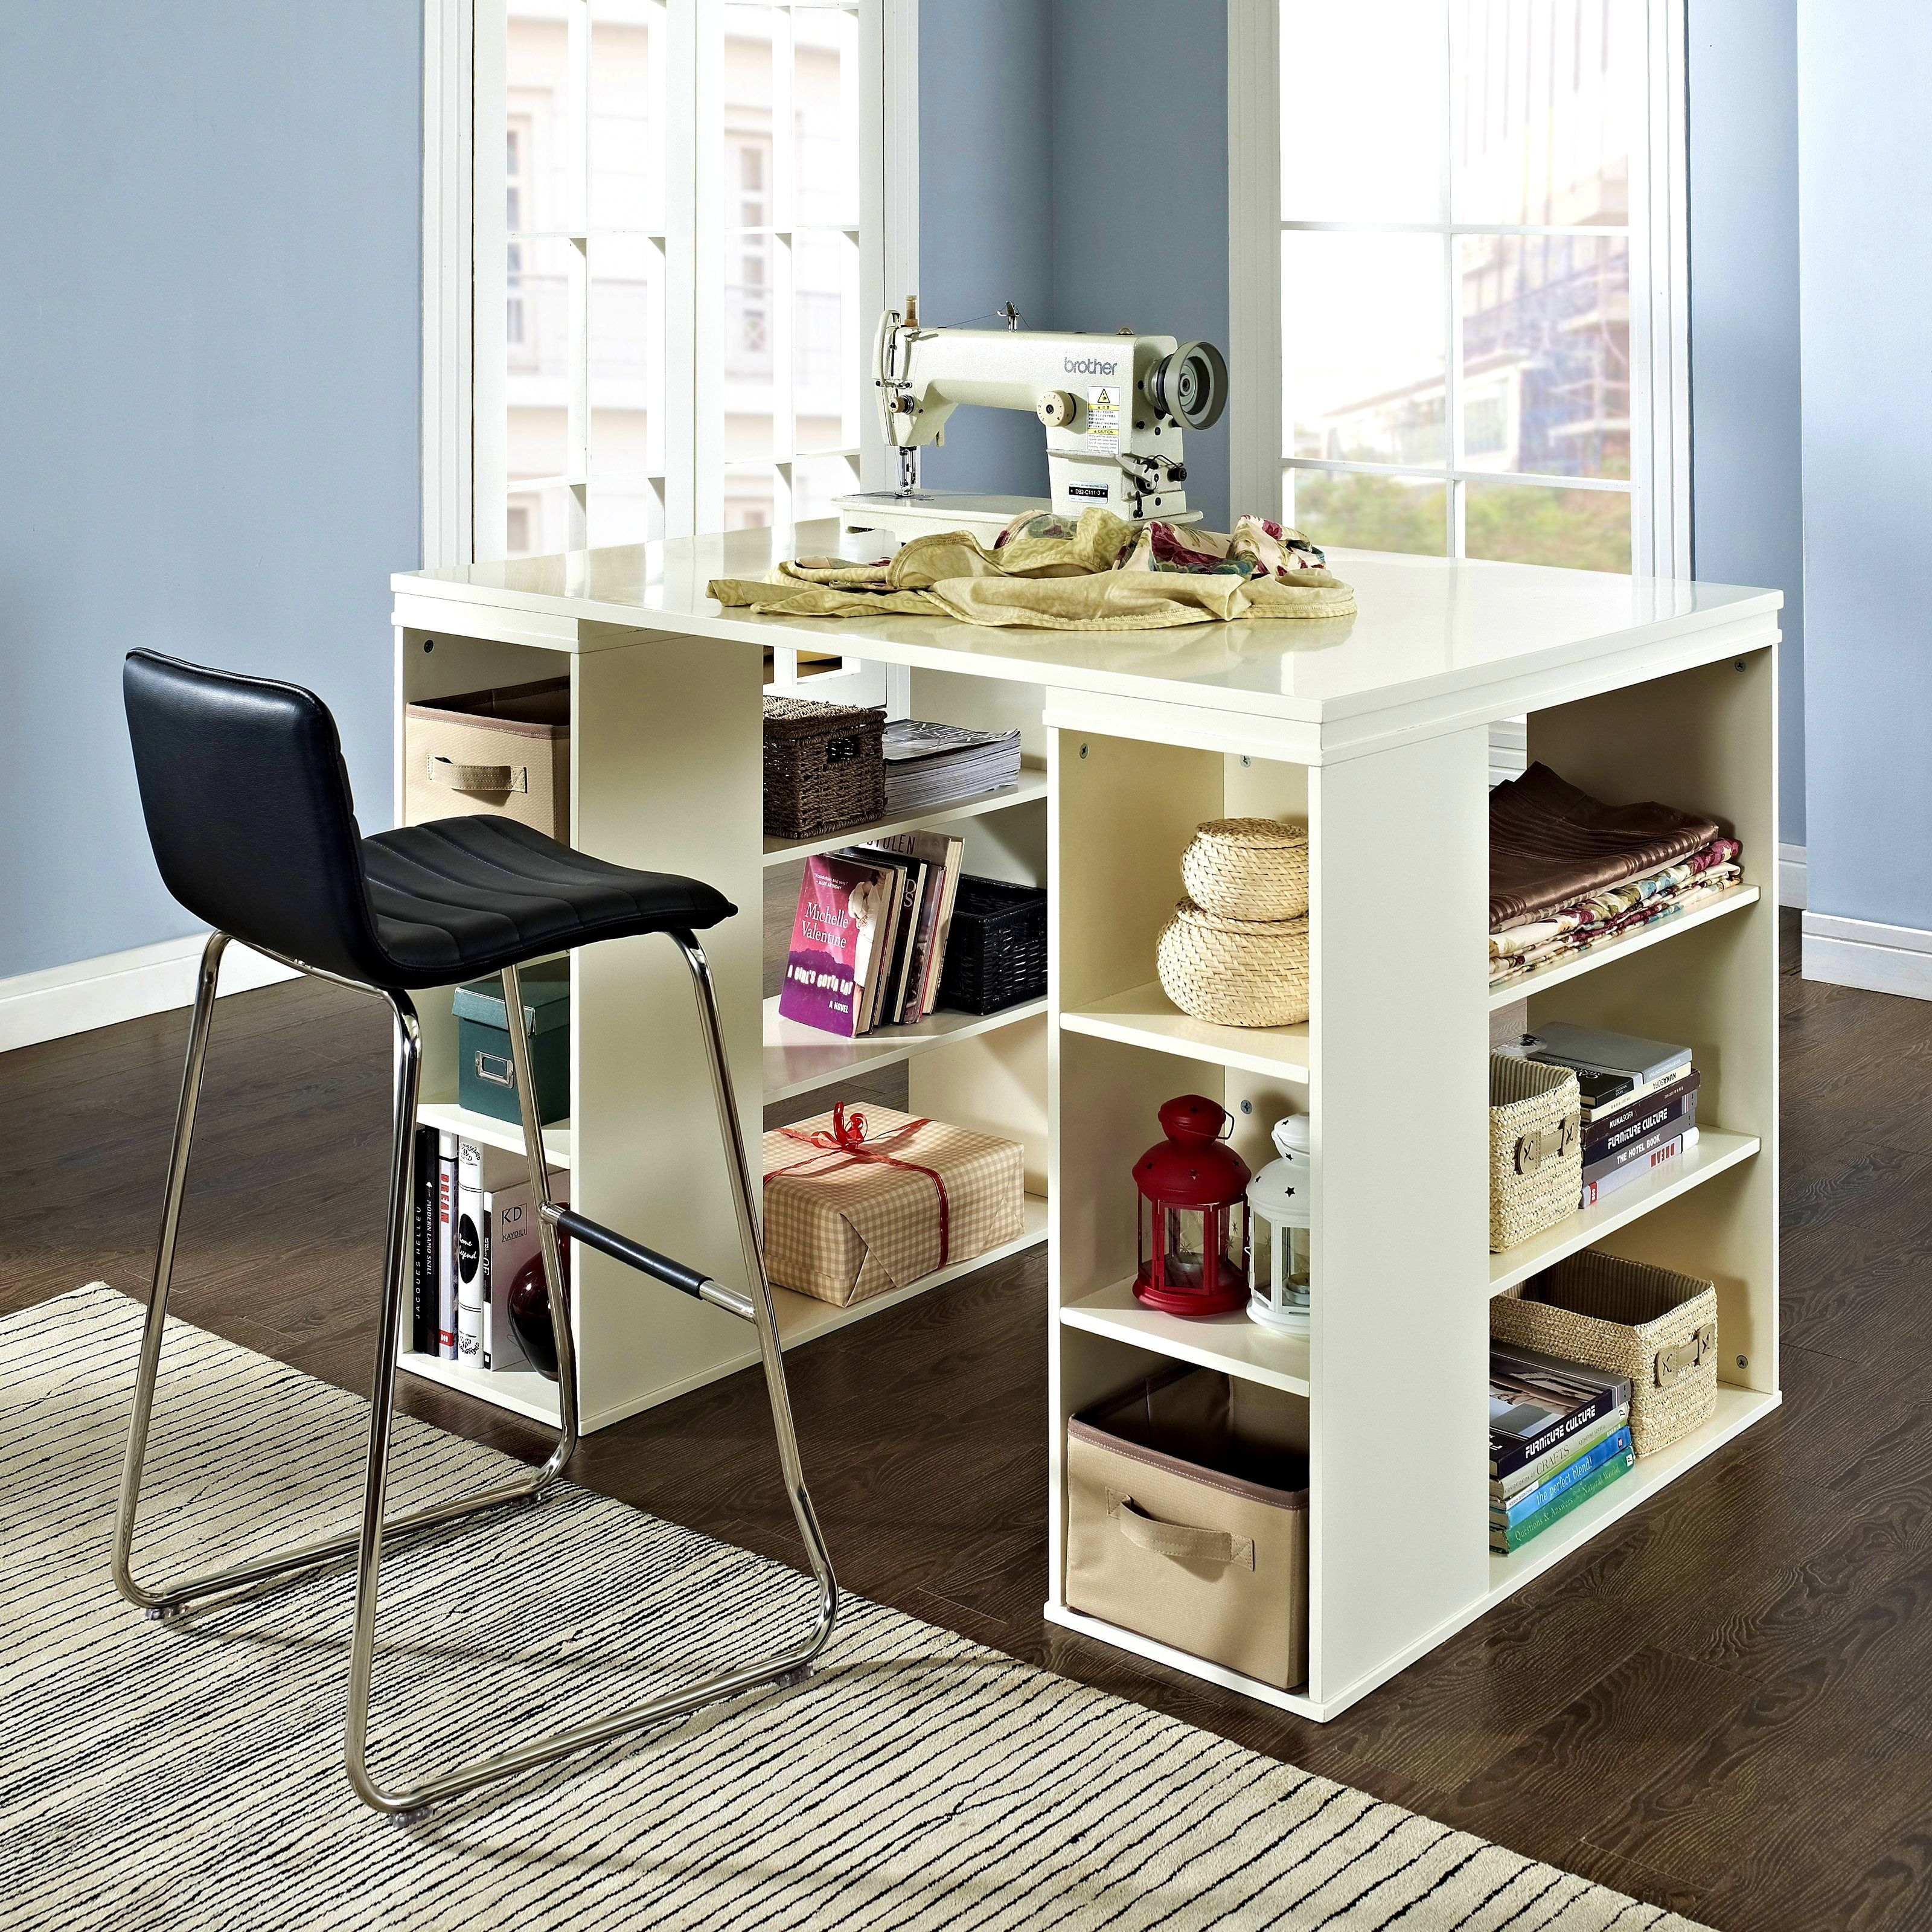 Bathroomappealing Sullivan Counter Height Craft Table Vanilla Sewing Furniture Tall Storage Masteralz Craft Tables With Storage Sewing Desk Counter Height Desk